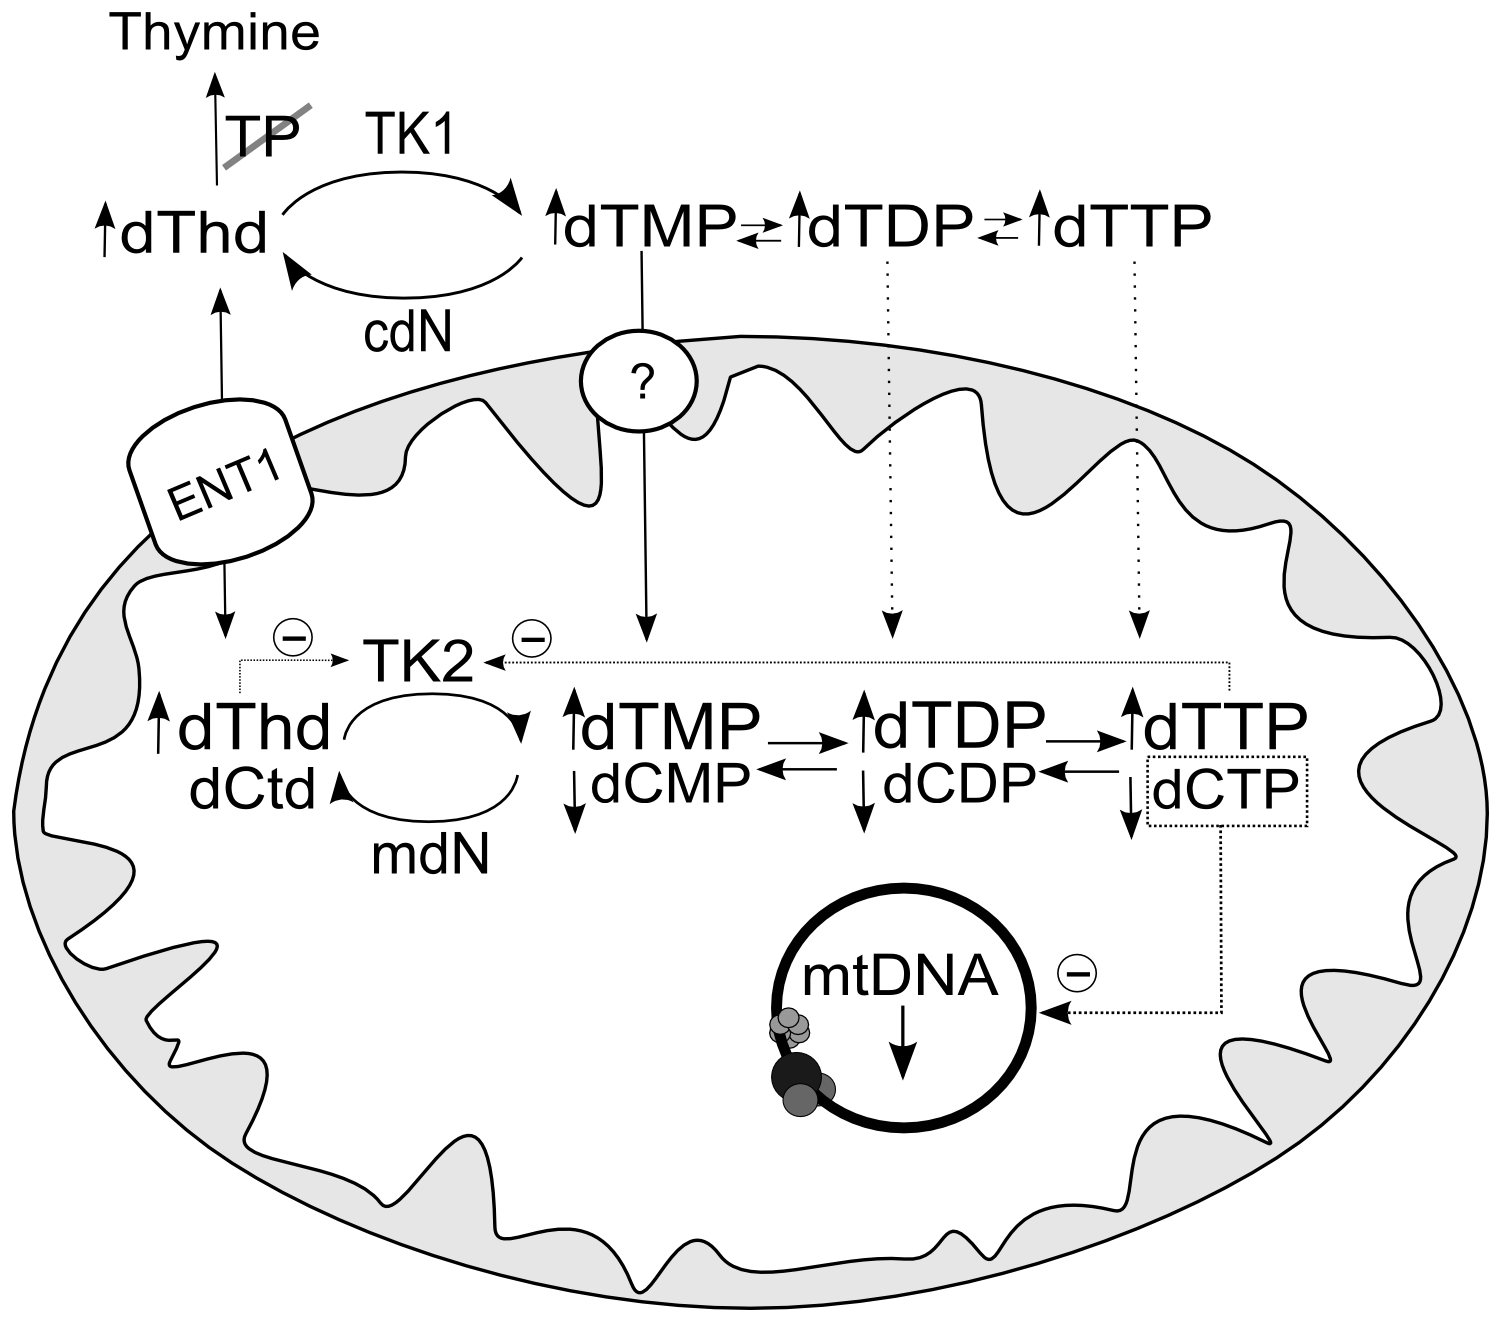 Hypothetical mechanism accounting for decrease in mtDNA replication caused by thymidine overload.